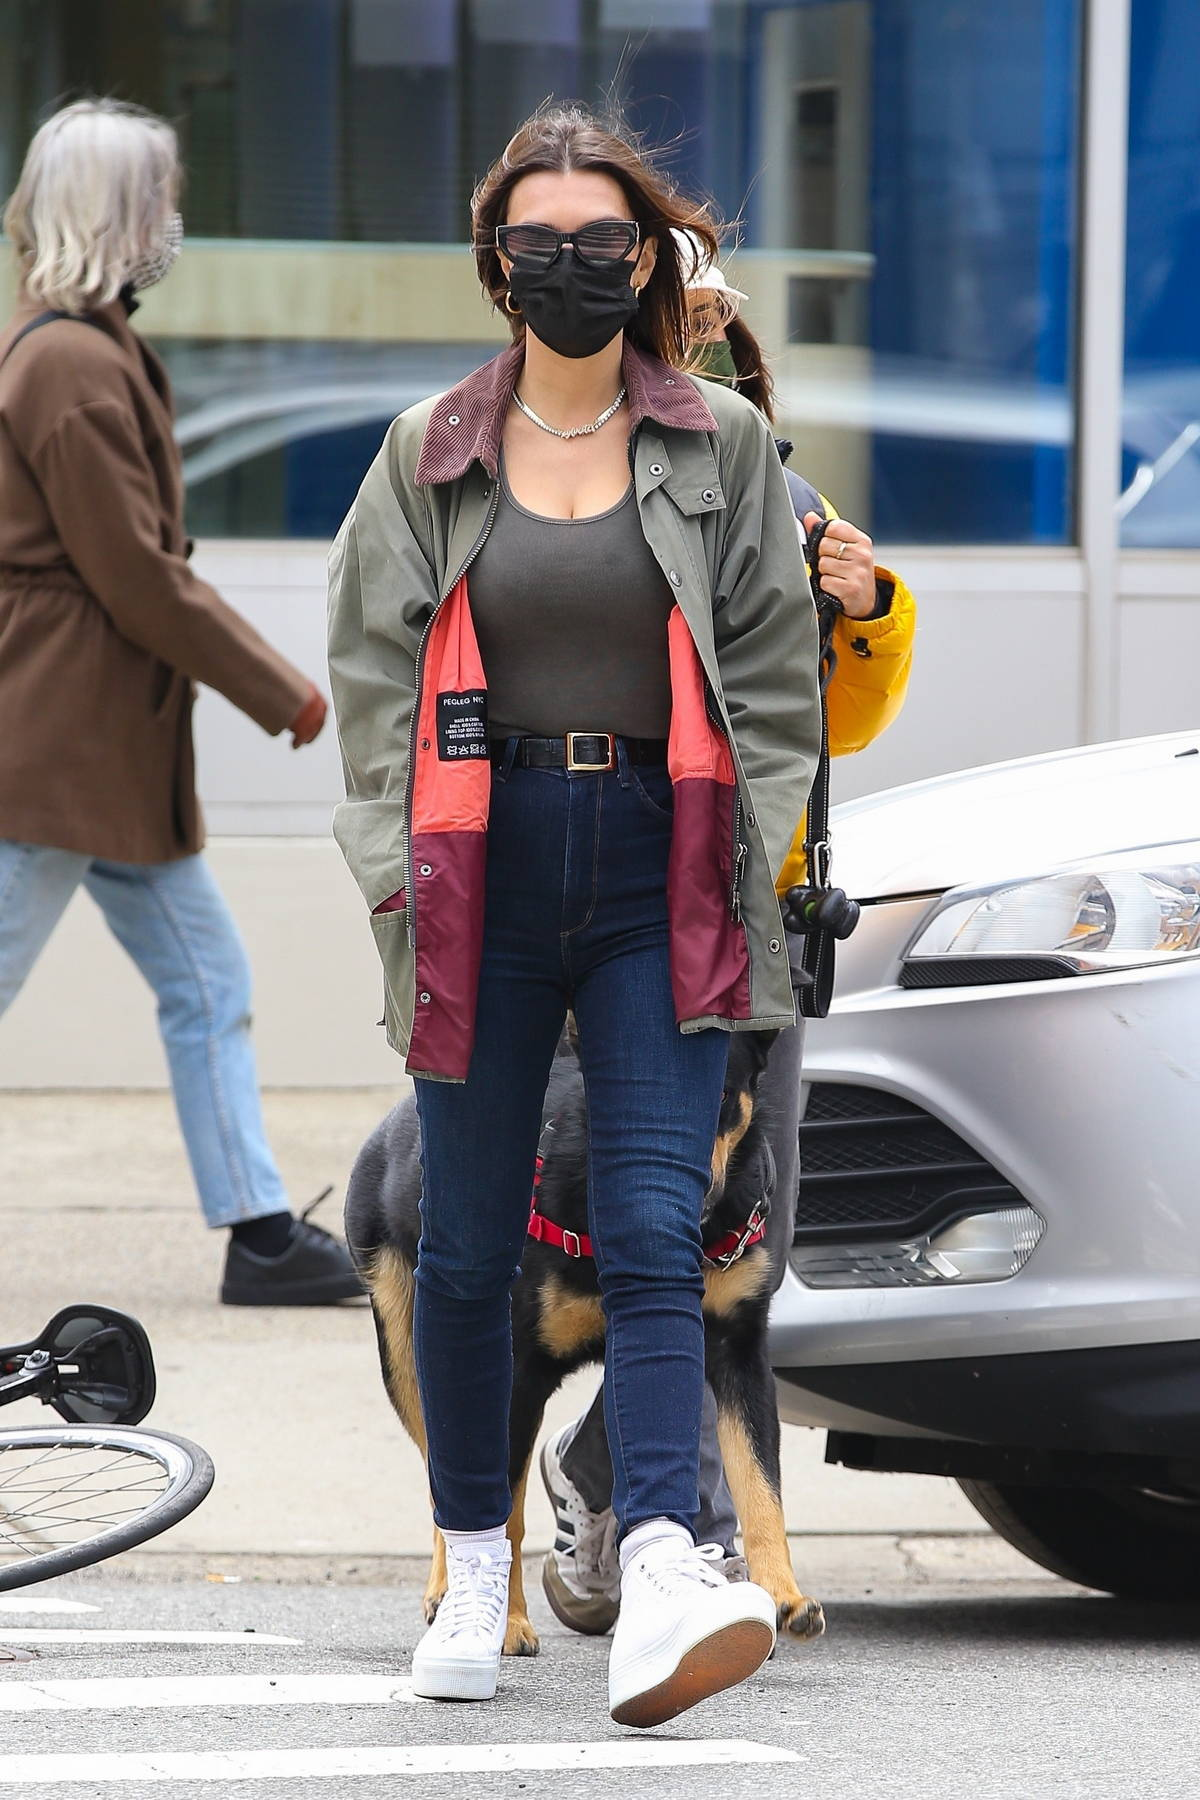 Emily Ratajkowski looks cool in skinny jeans, a tight top and jacket while out for a stroll with friends in New York City